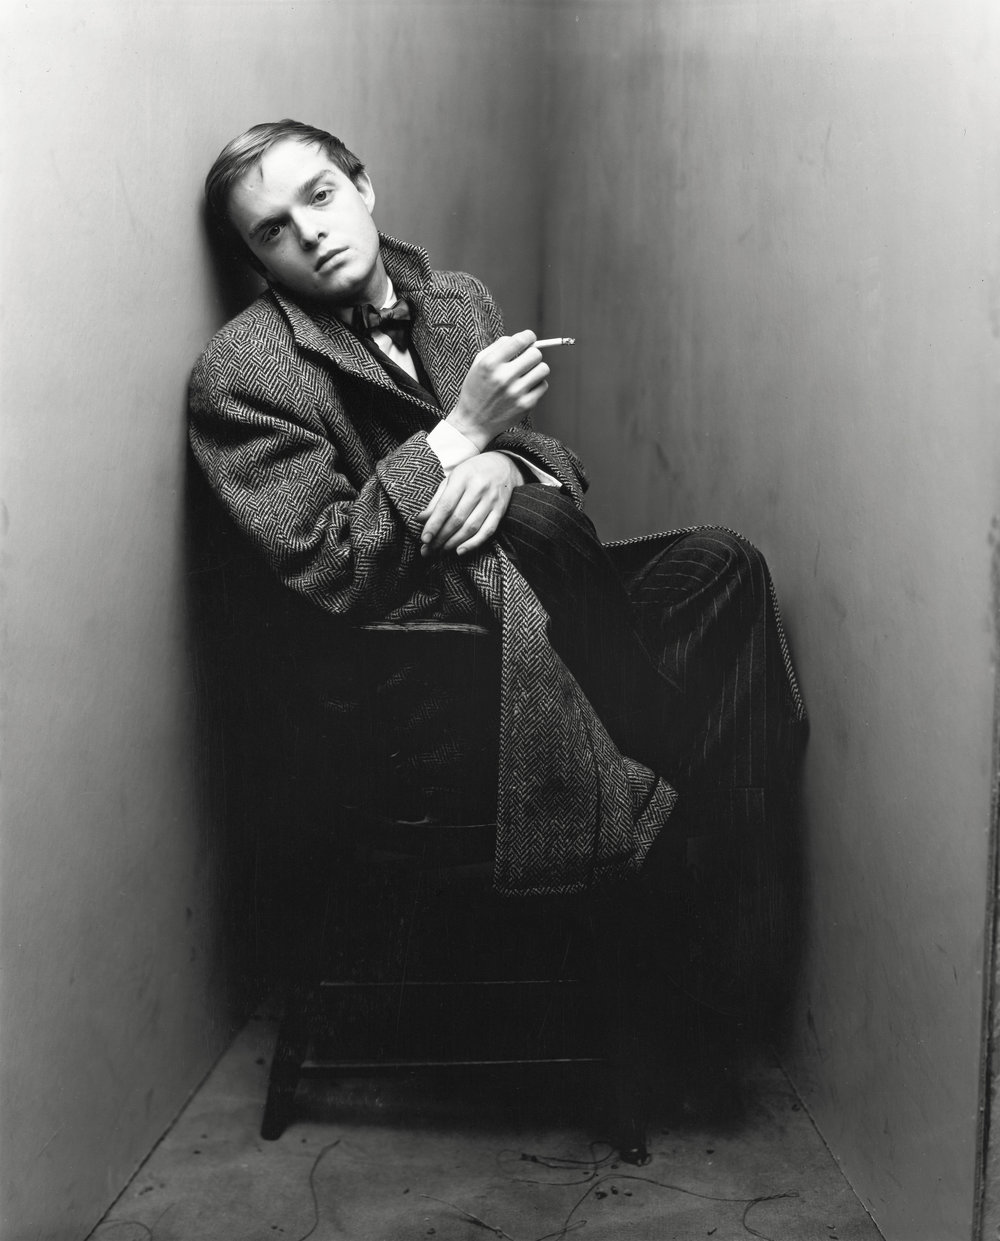 Irving Penn (American, 1917–2009)     Truman Capote , New York, 1948    Platinum-palladium print, 1968   15 7/8 × 15 3/8 in. (40.3 × 39.1 cm)   The Metropolitan Museum of Art, New York,   Purchase, The Horace W. Goldsmith   Foundation Gift, through Joyce and Robert Menschel, 1986   © The Irving Penn Foundation